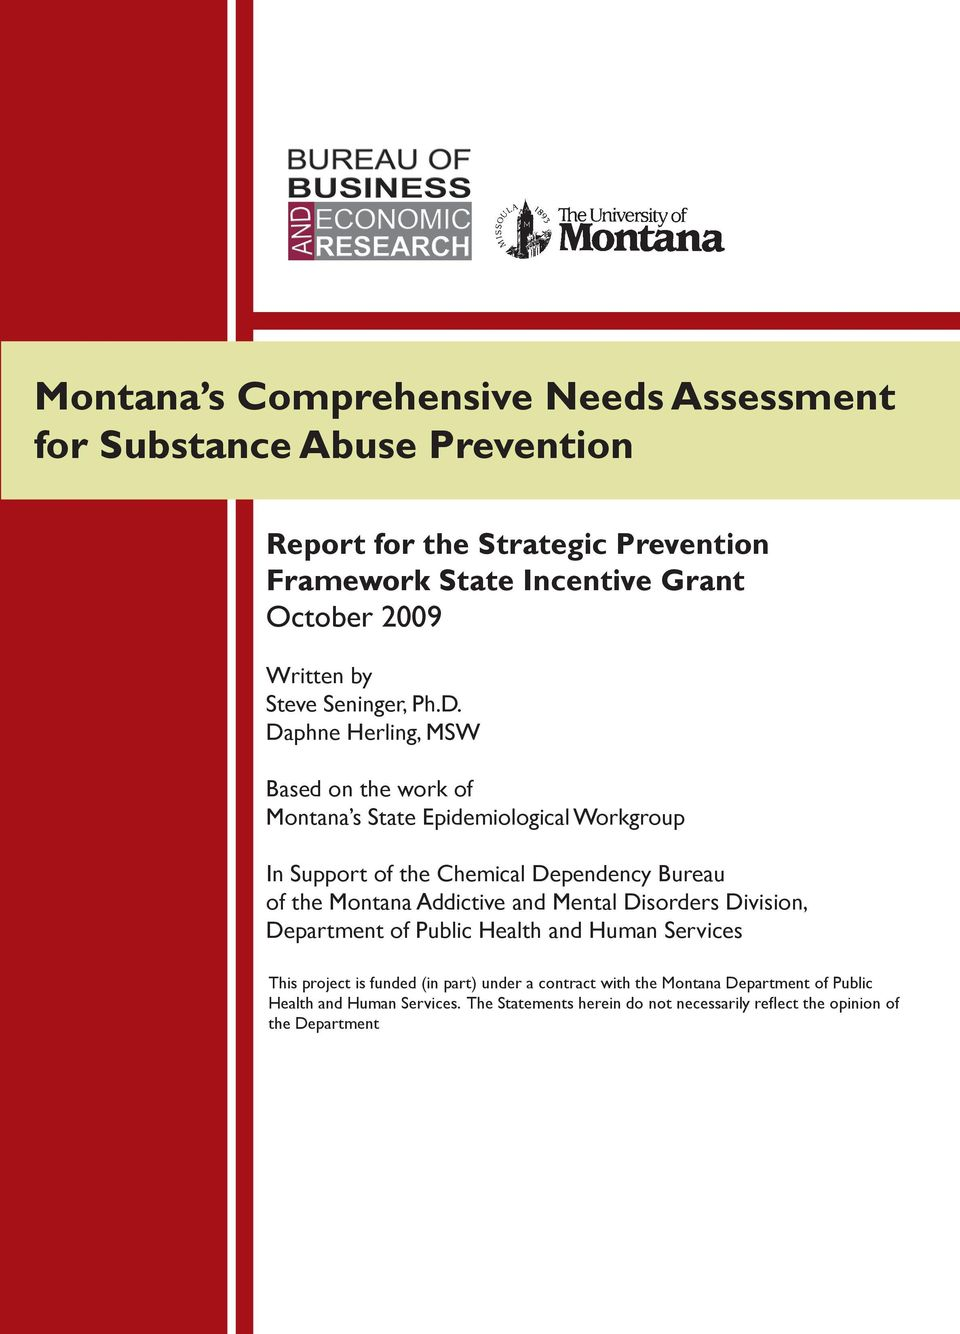 Daphne Herling, MSW Based on the work of Montana s State Epidemiological Workgroup In Support of the Chemical Dependency Bureau of the Montana Addictive